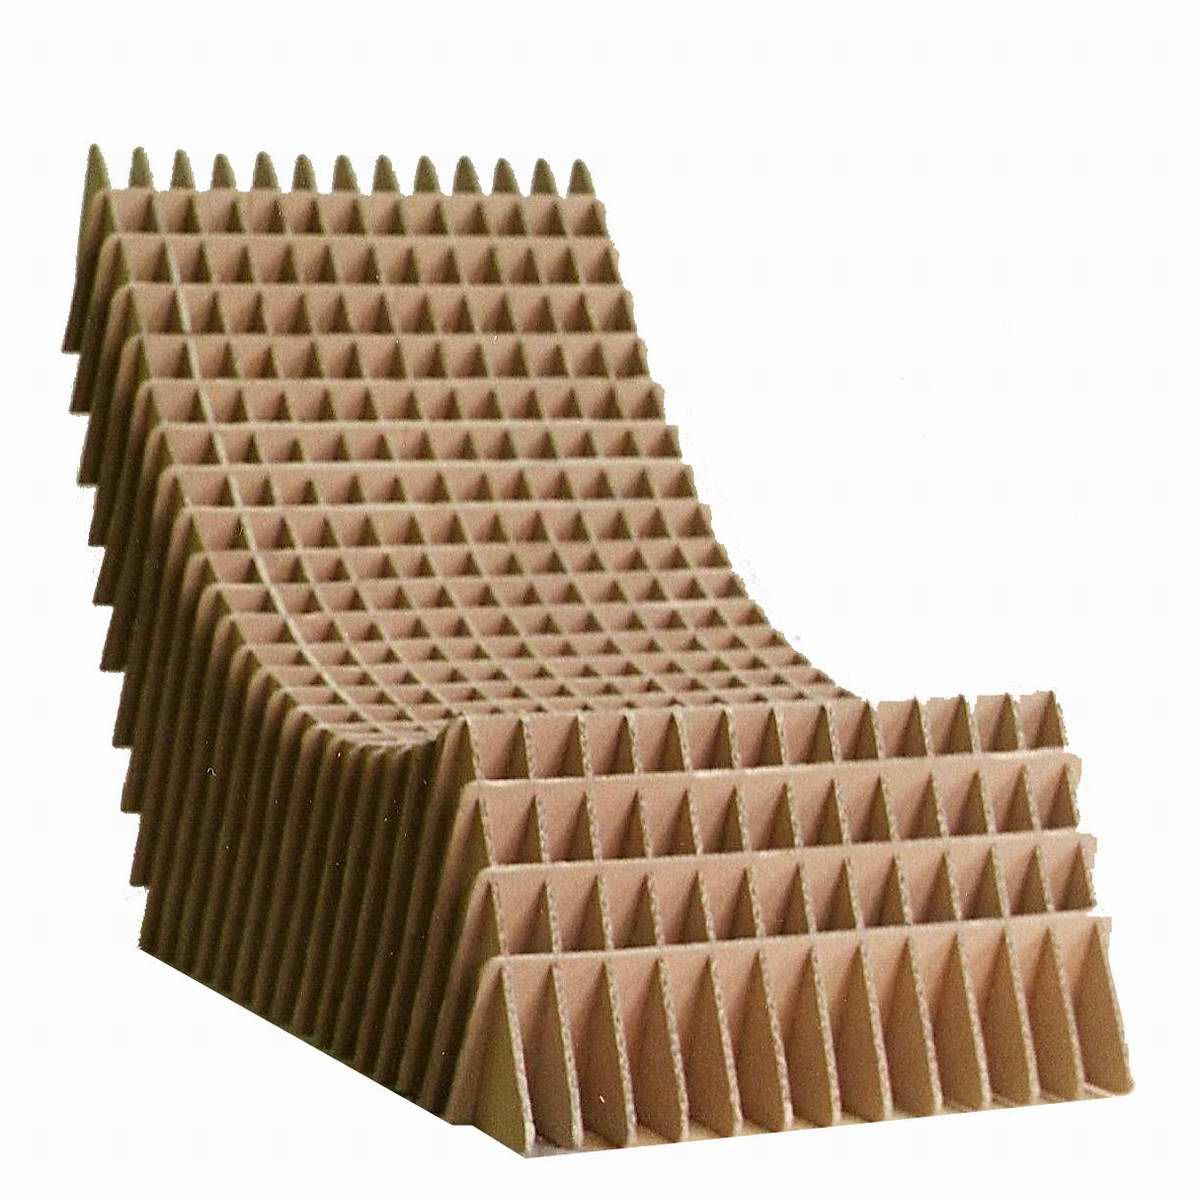 Cardboard rocking chair - 7 Wacky Pieces Of Cardboard Furniture You Ll Have To See To Believe